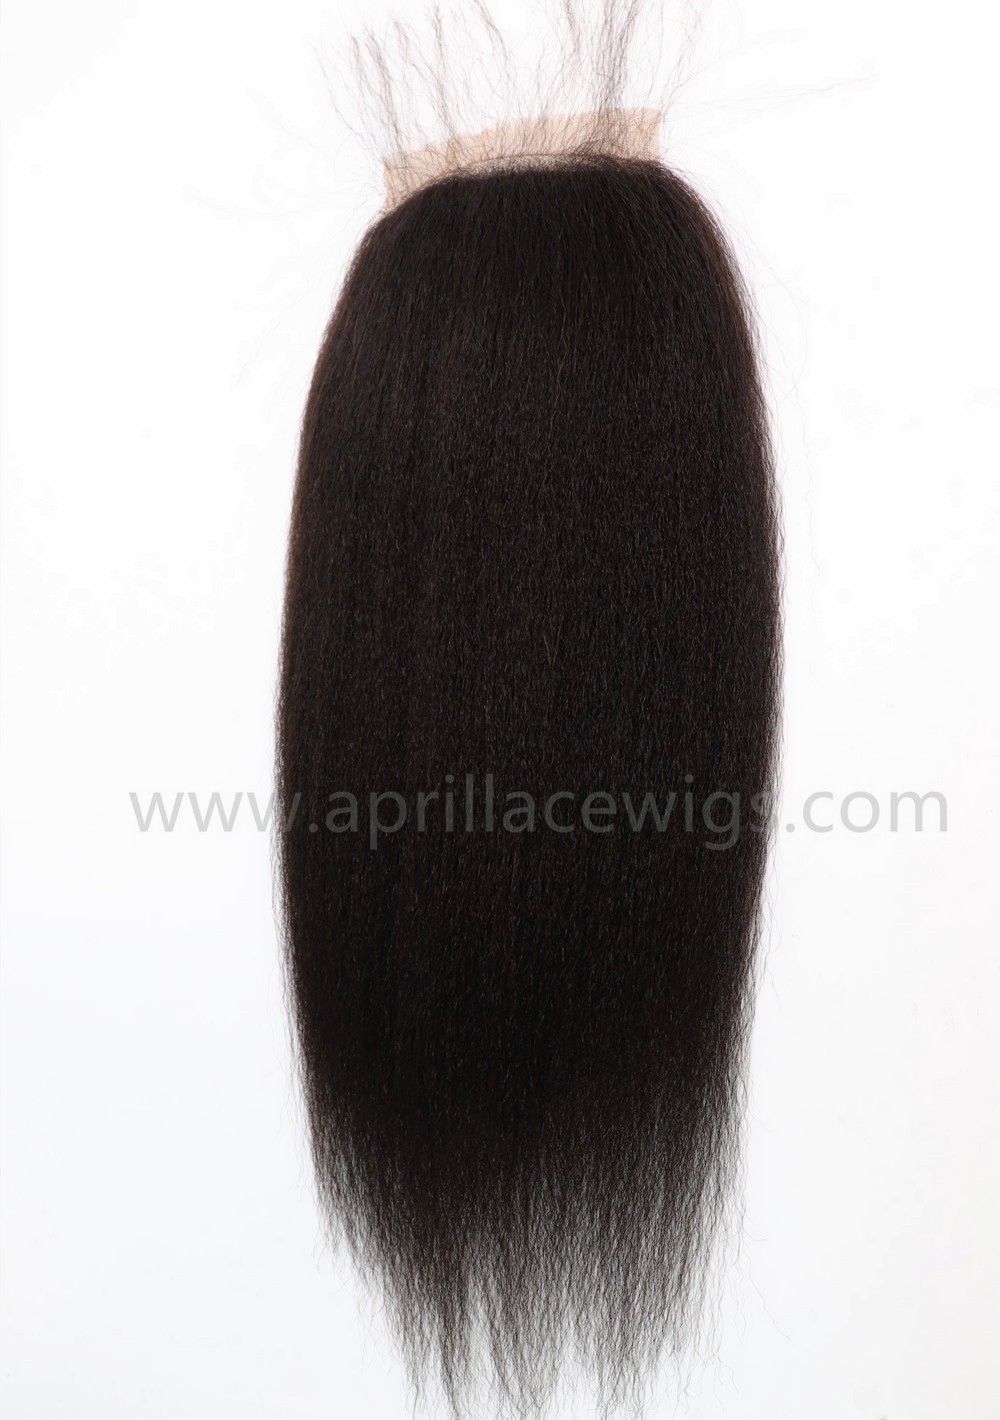 italian yaki silk top closure